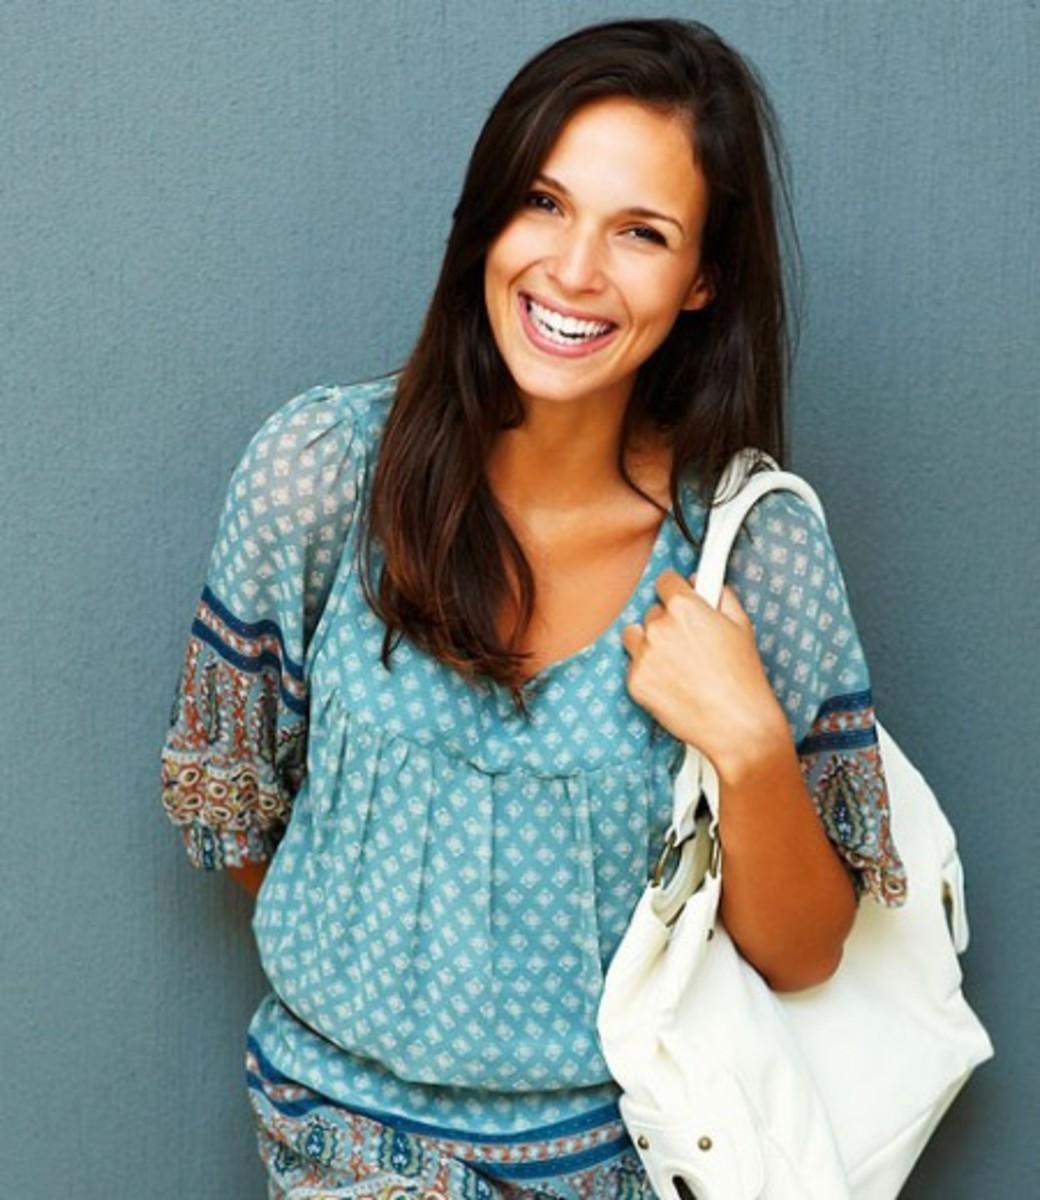 bigstock_Friendly_Brunette_With_Purse_O_10741913-450x519